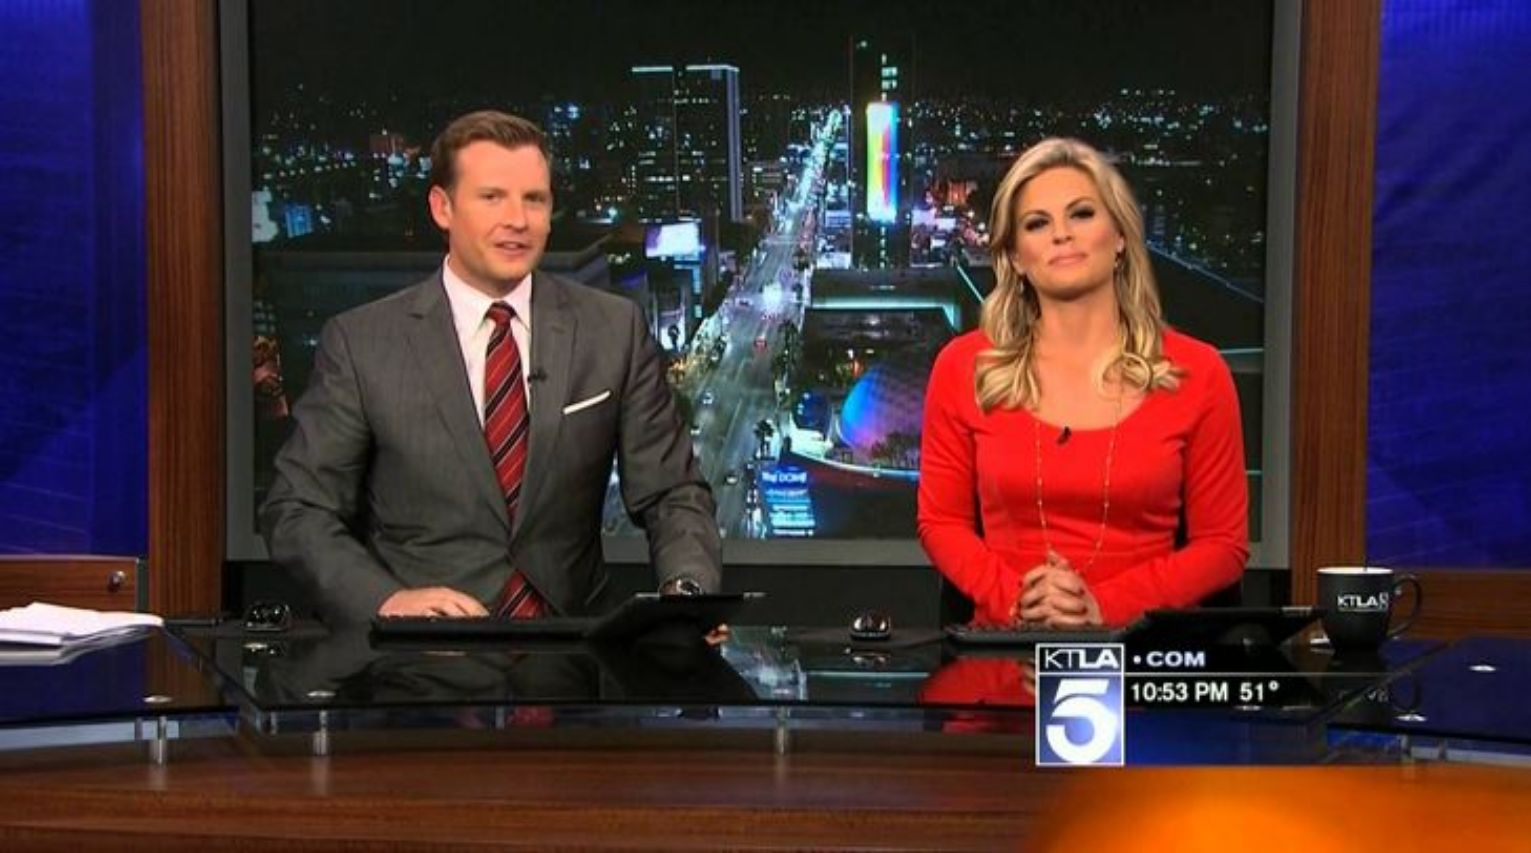 These Female News Anchors Are So Hot You'll Watch News For Them